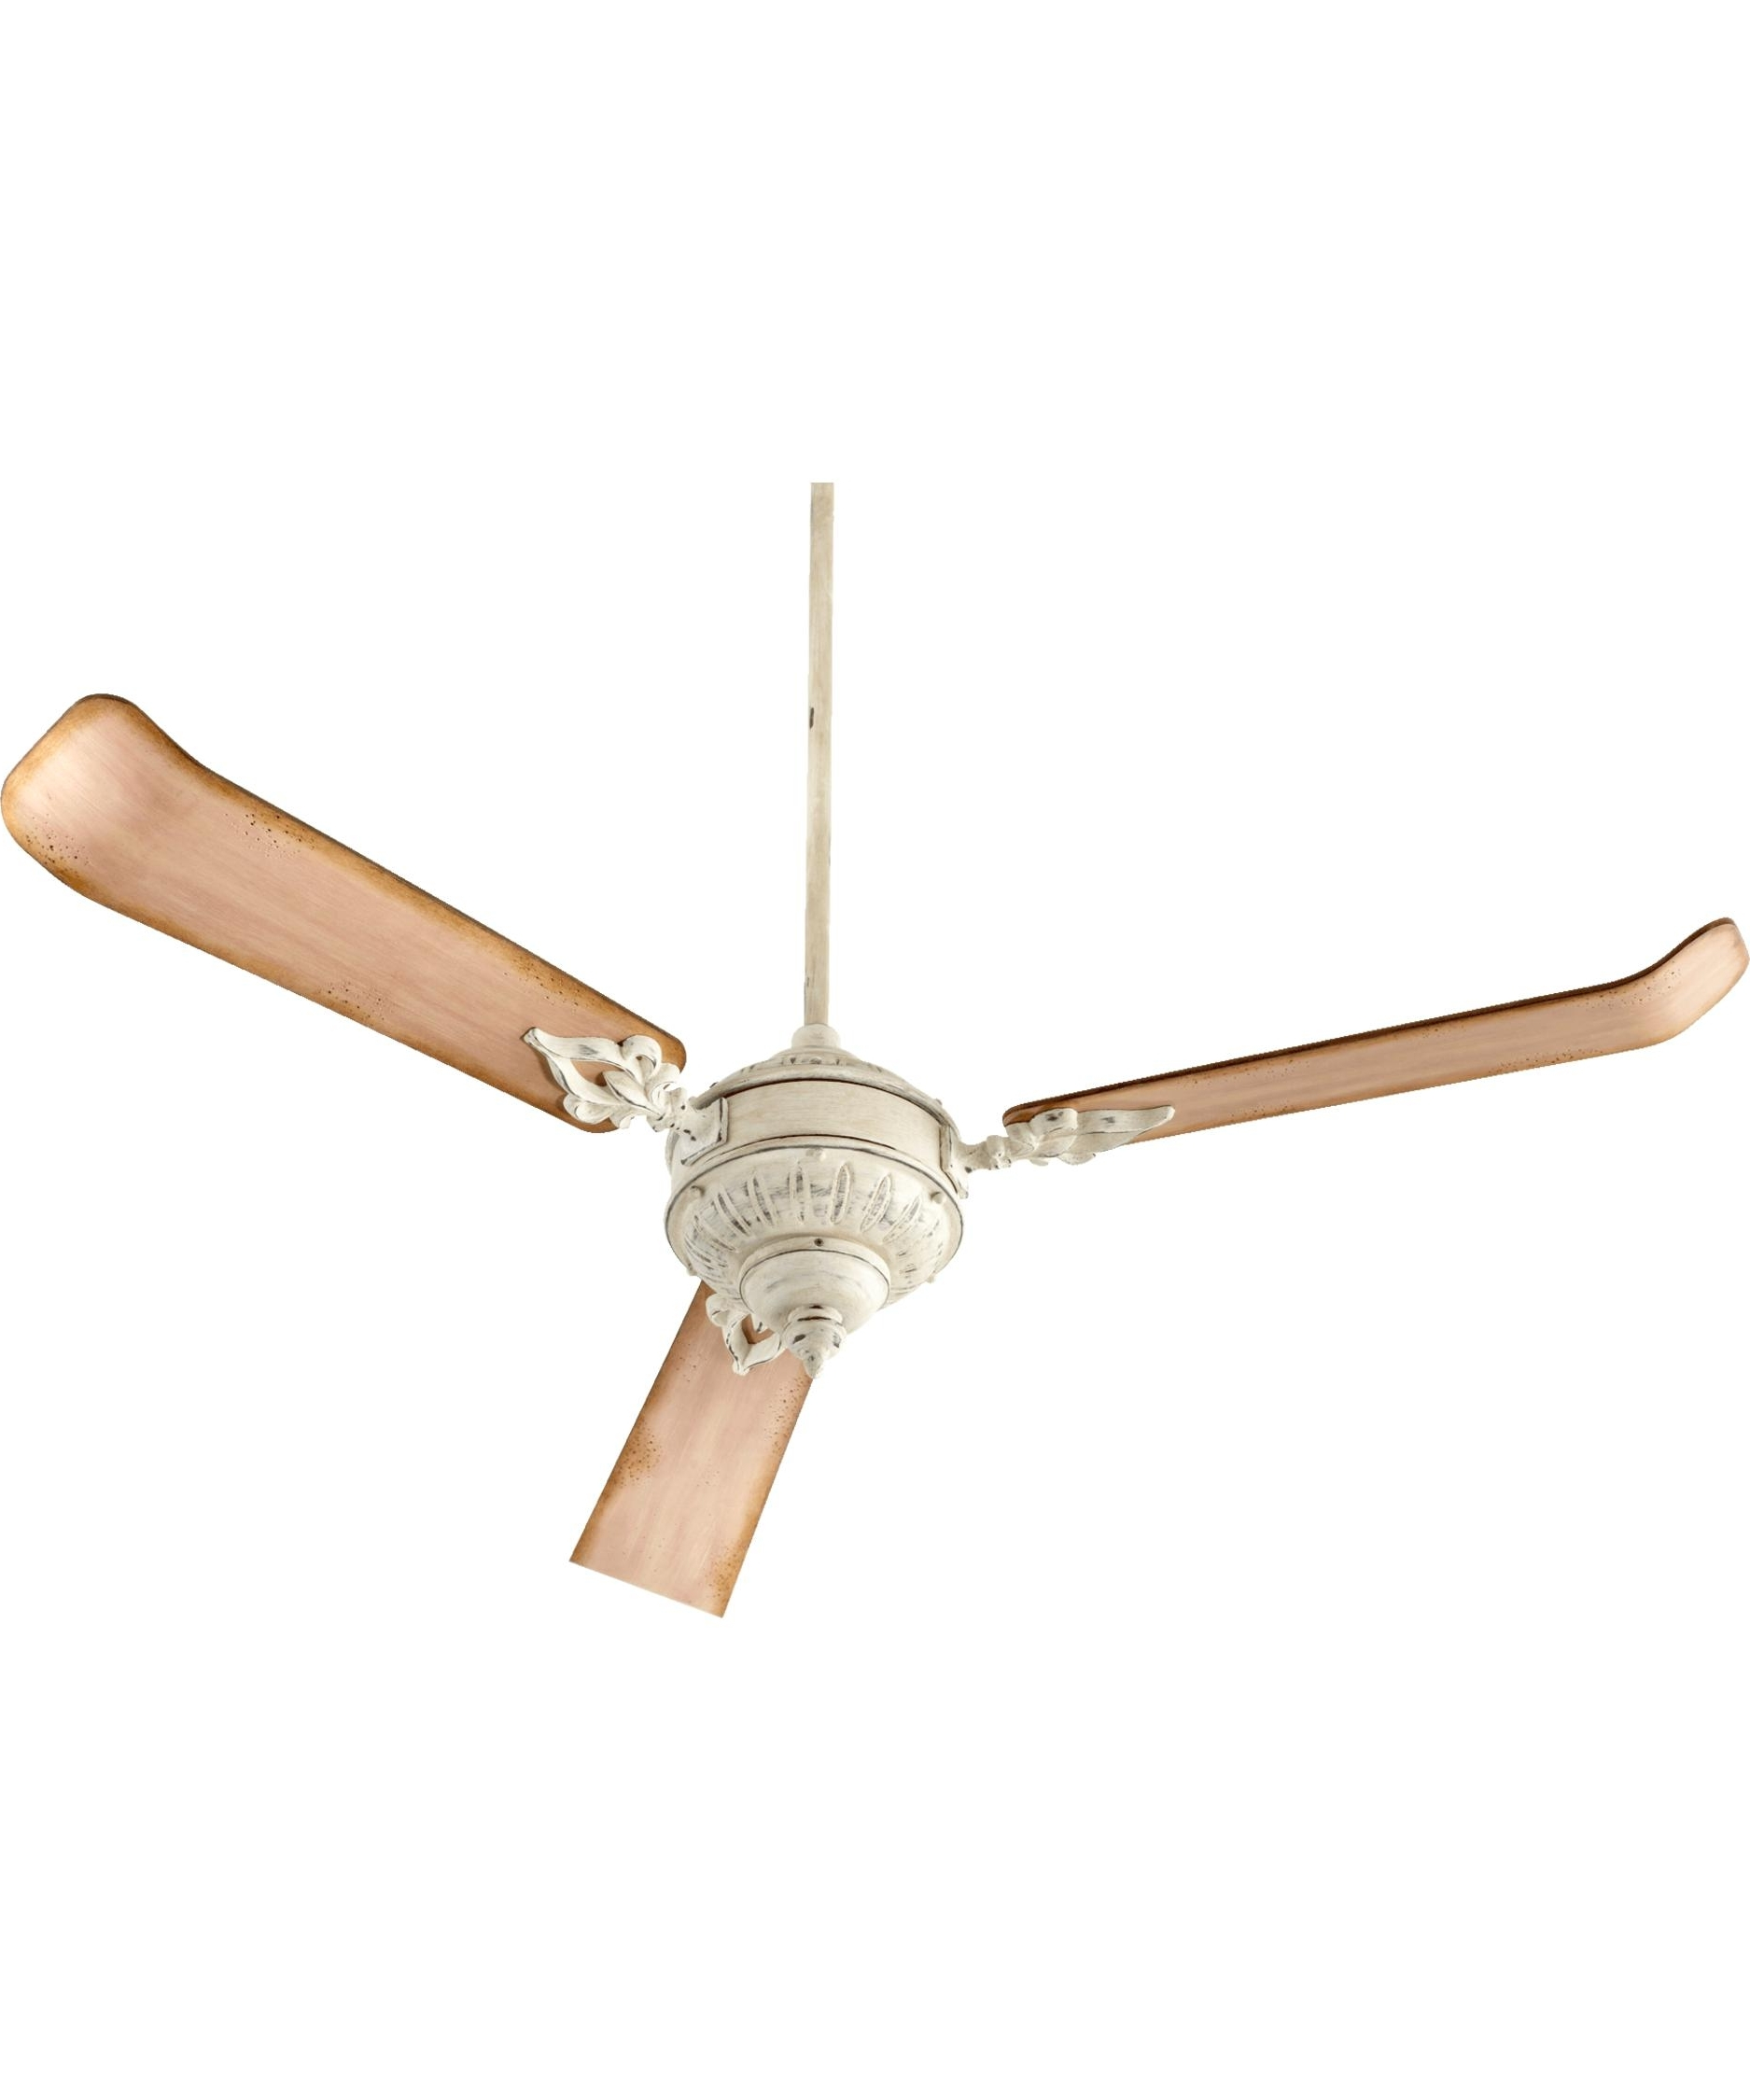 Most Popular Quorum Outdoor Ceiling Fans Throughout Quorum International 27603 Brewster 60 Inch 3 Blade Ceiling Fan (View 2 of 20)